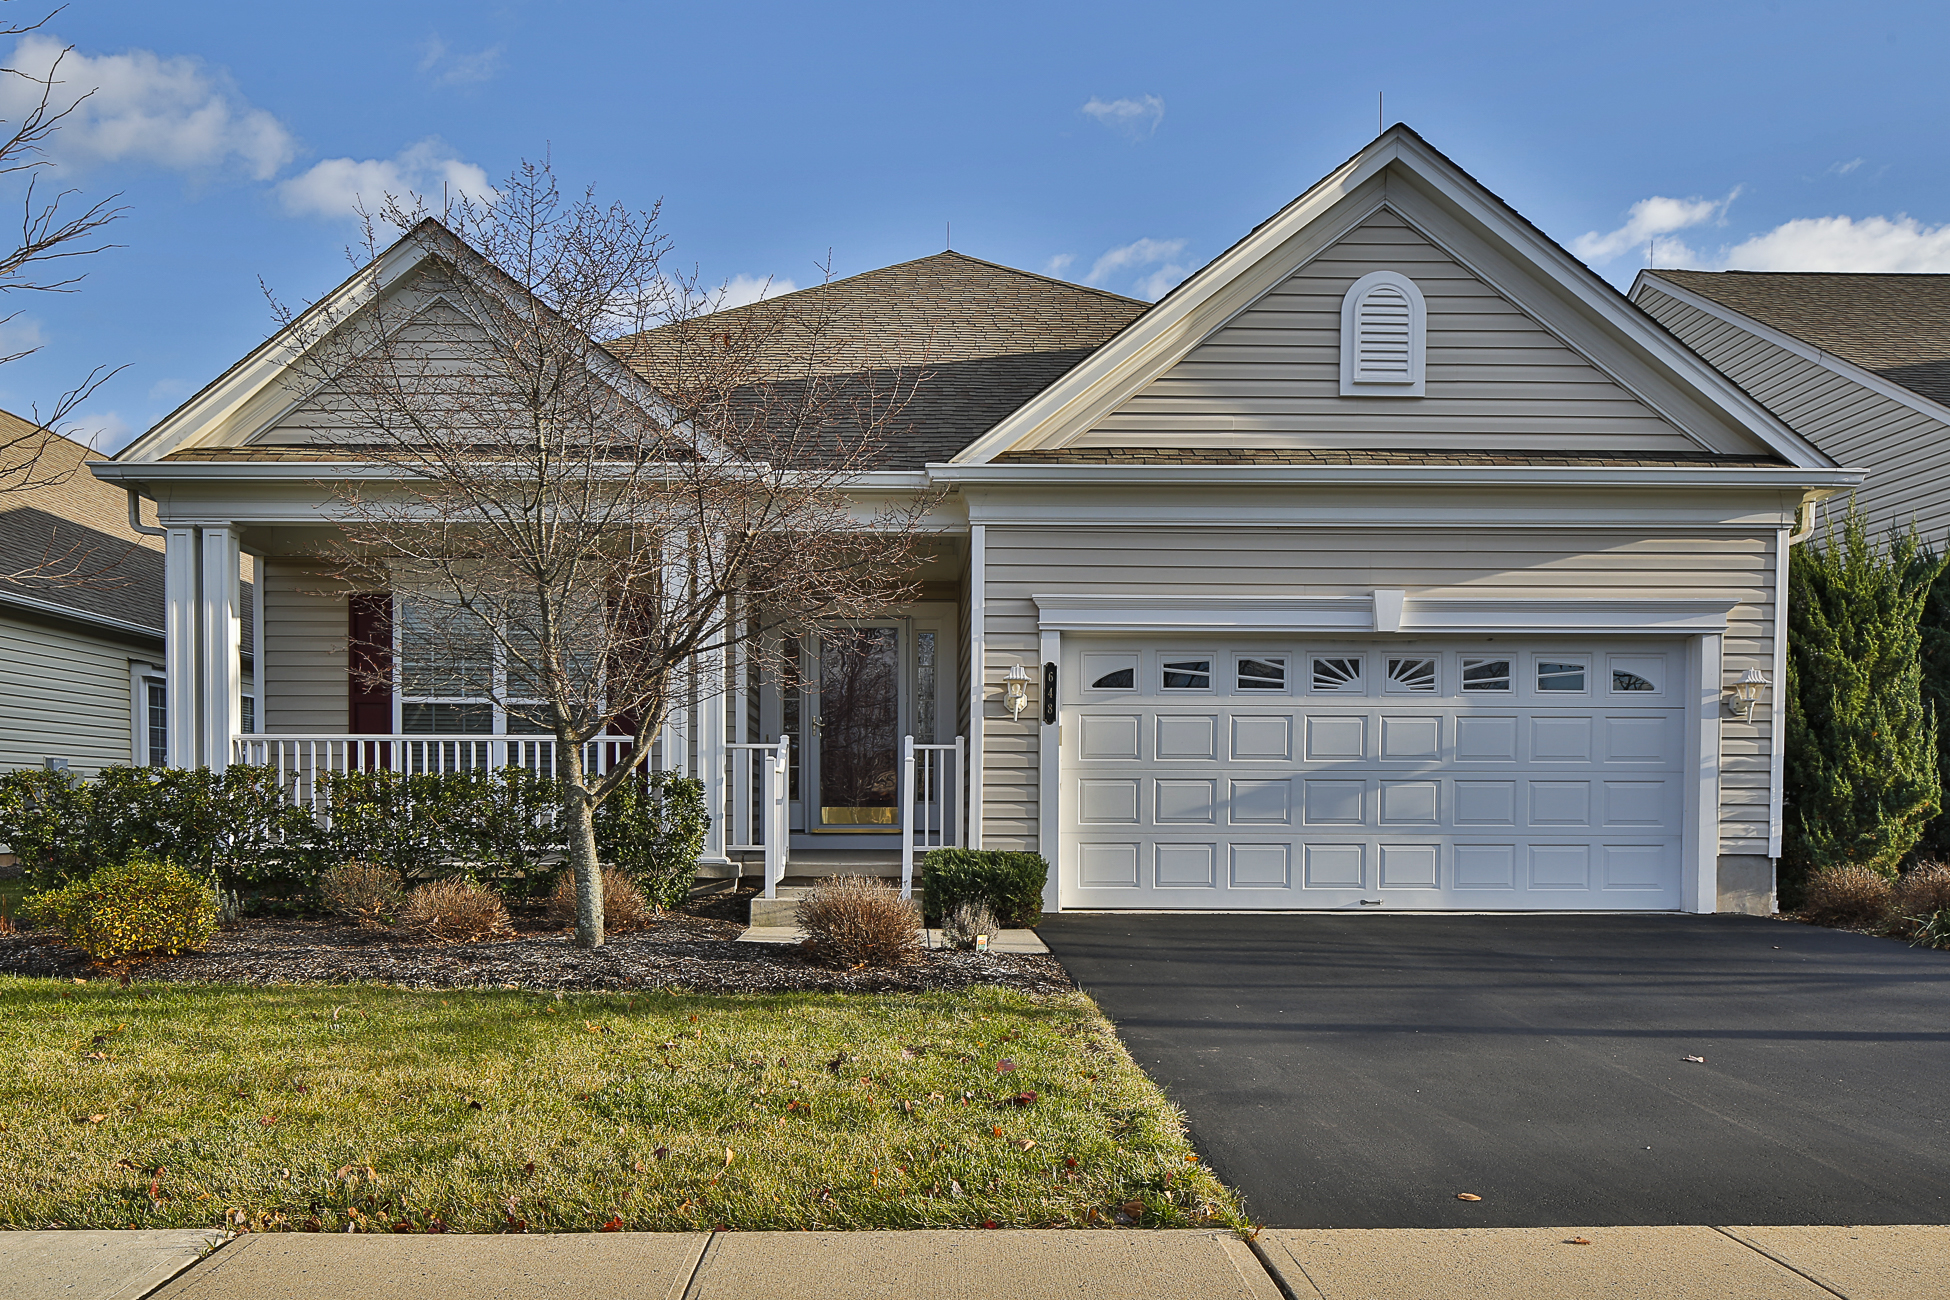 Property For Sale at Sunshine Sweeps Through Pristine Brighton Model - Franklin Township